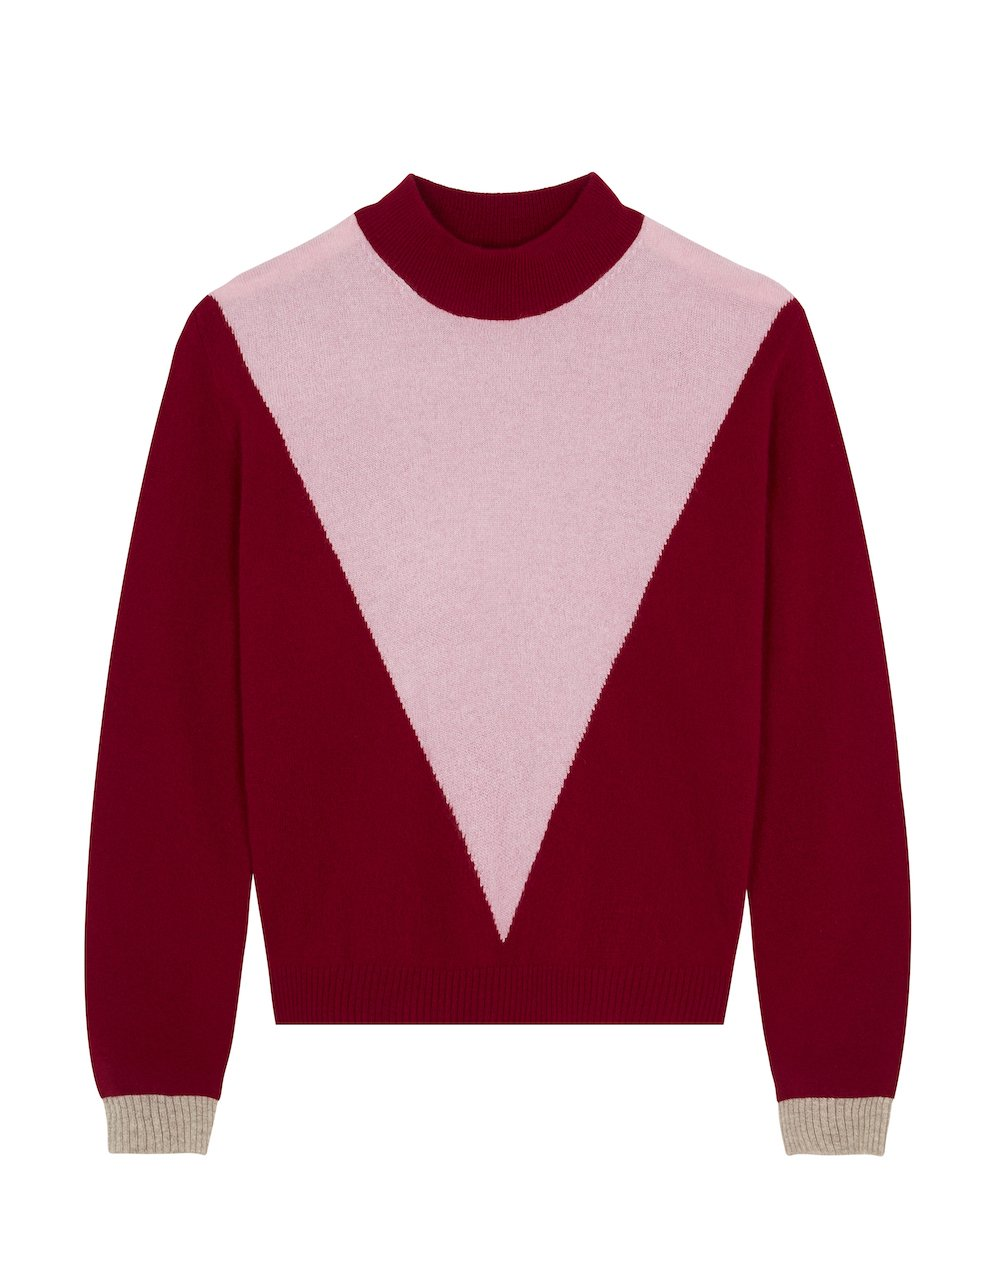 Intarsia_Funnel_sweater_Red_39c3a5b2-194f-491c-824d-0712087f4535.jpg